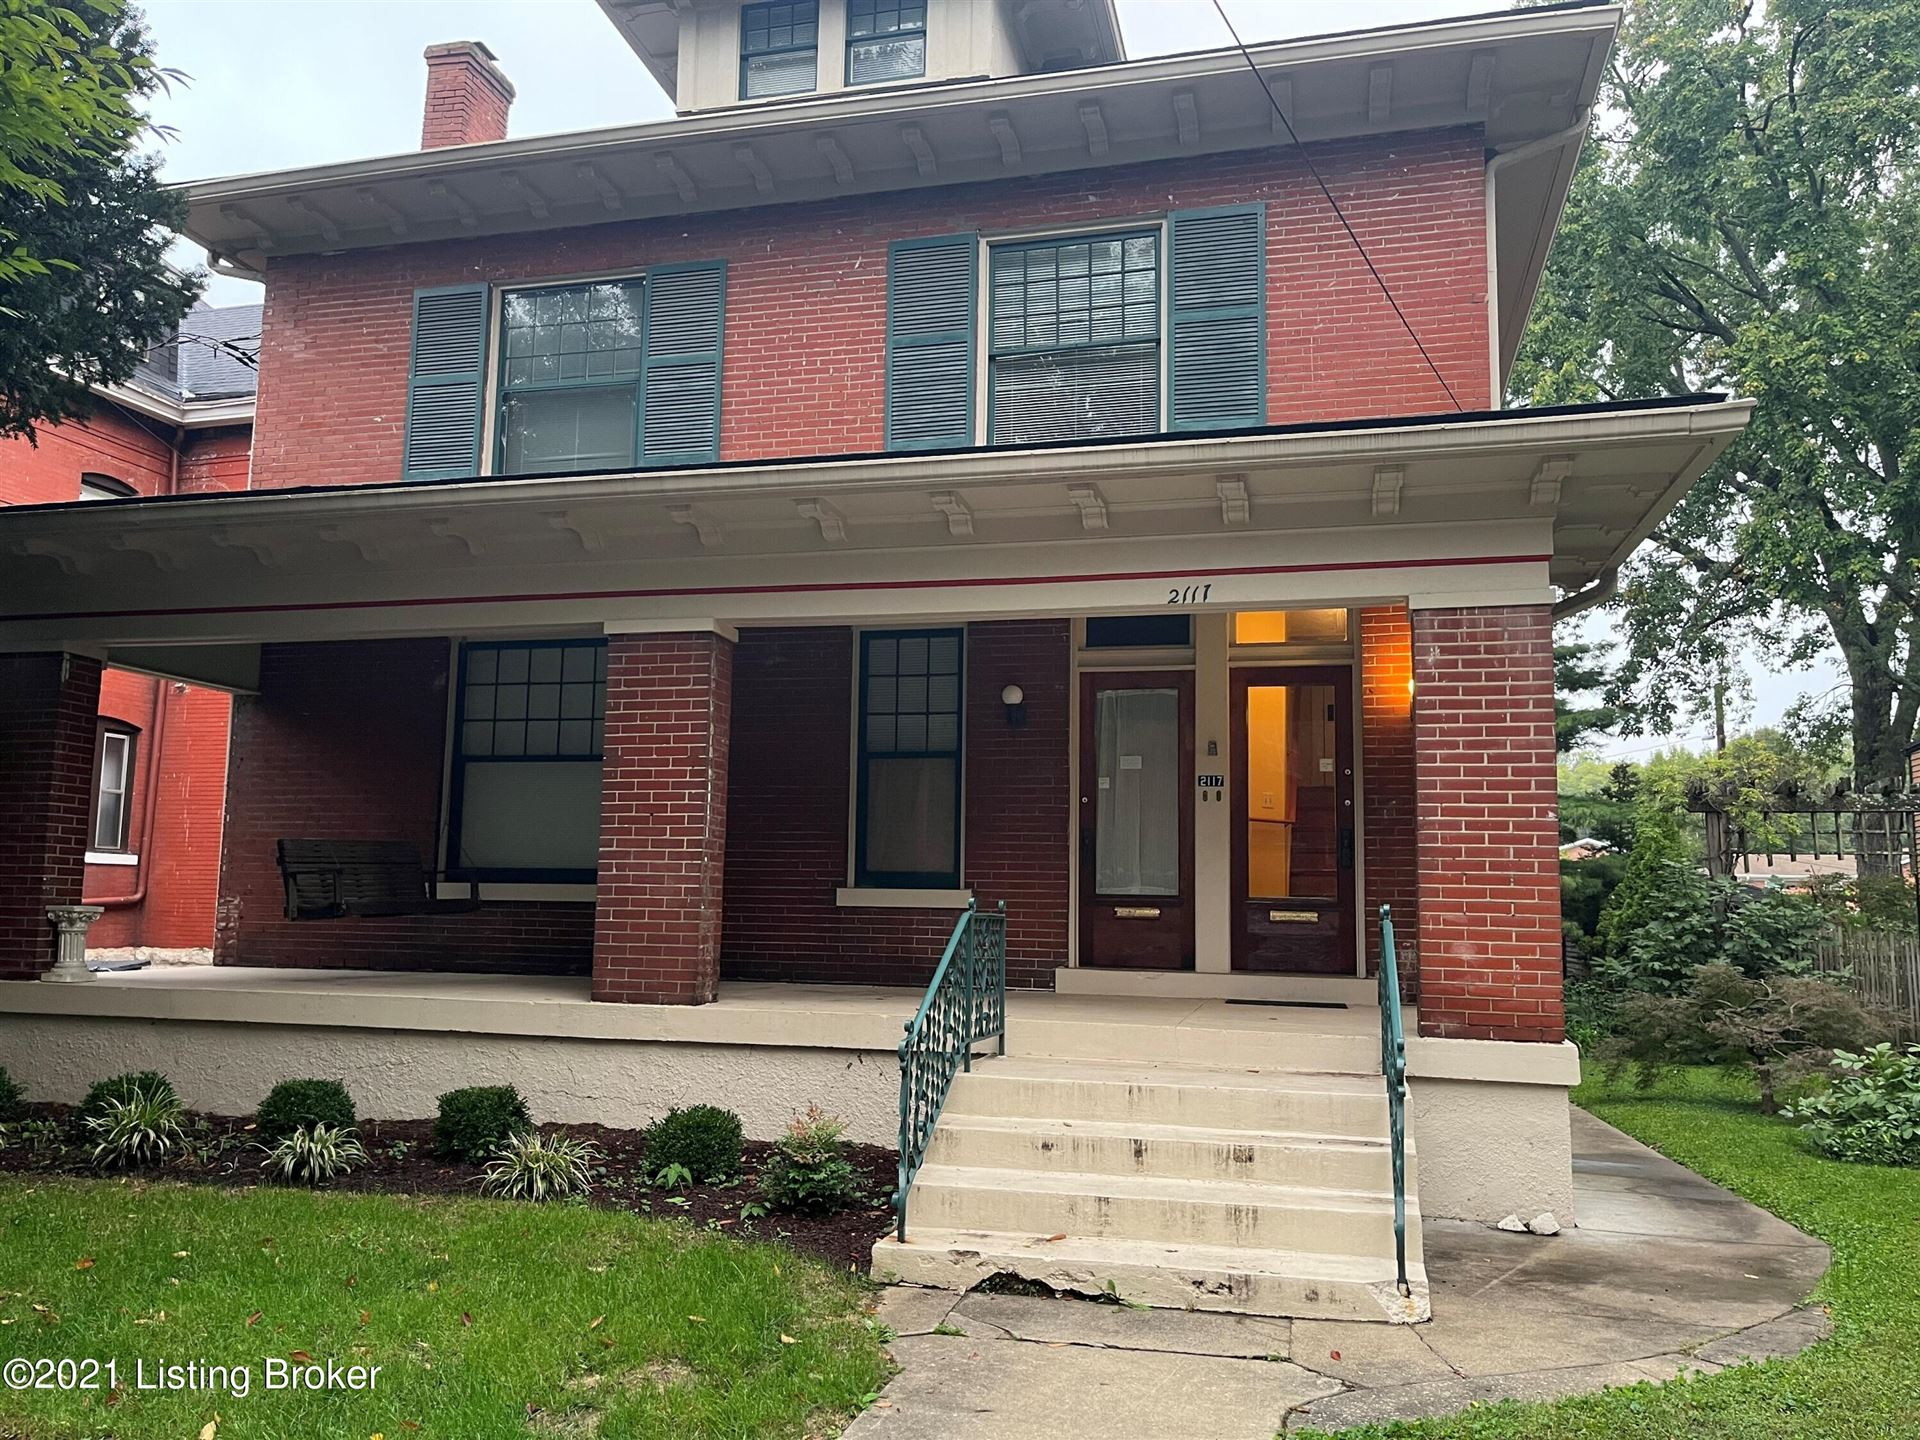 Photo for 2117 Highland Ave, Louisville, KY 40204 (MLS # 1597980)